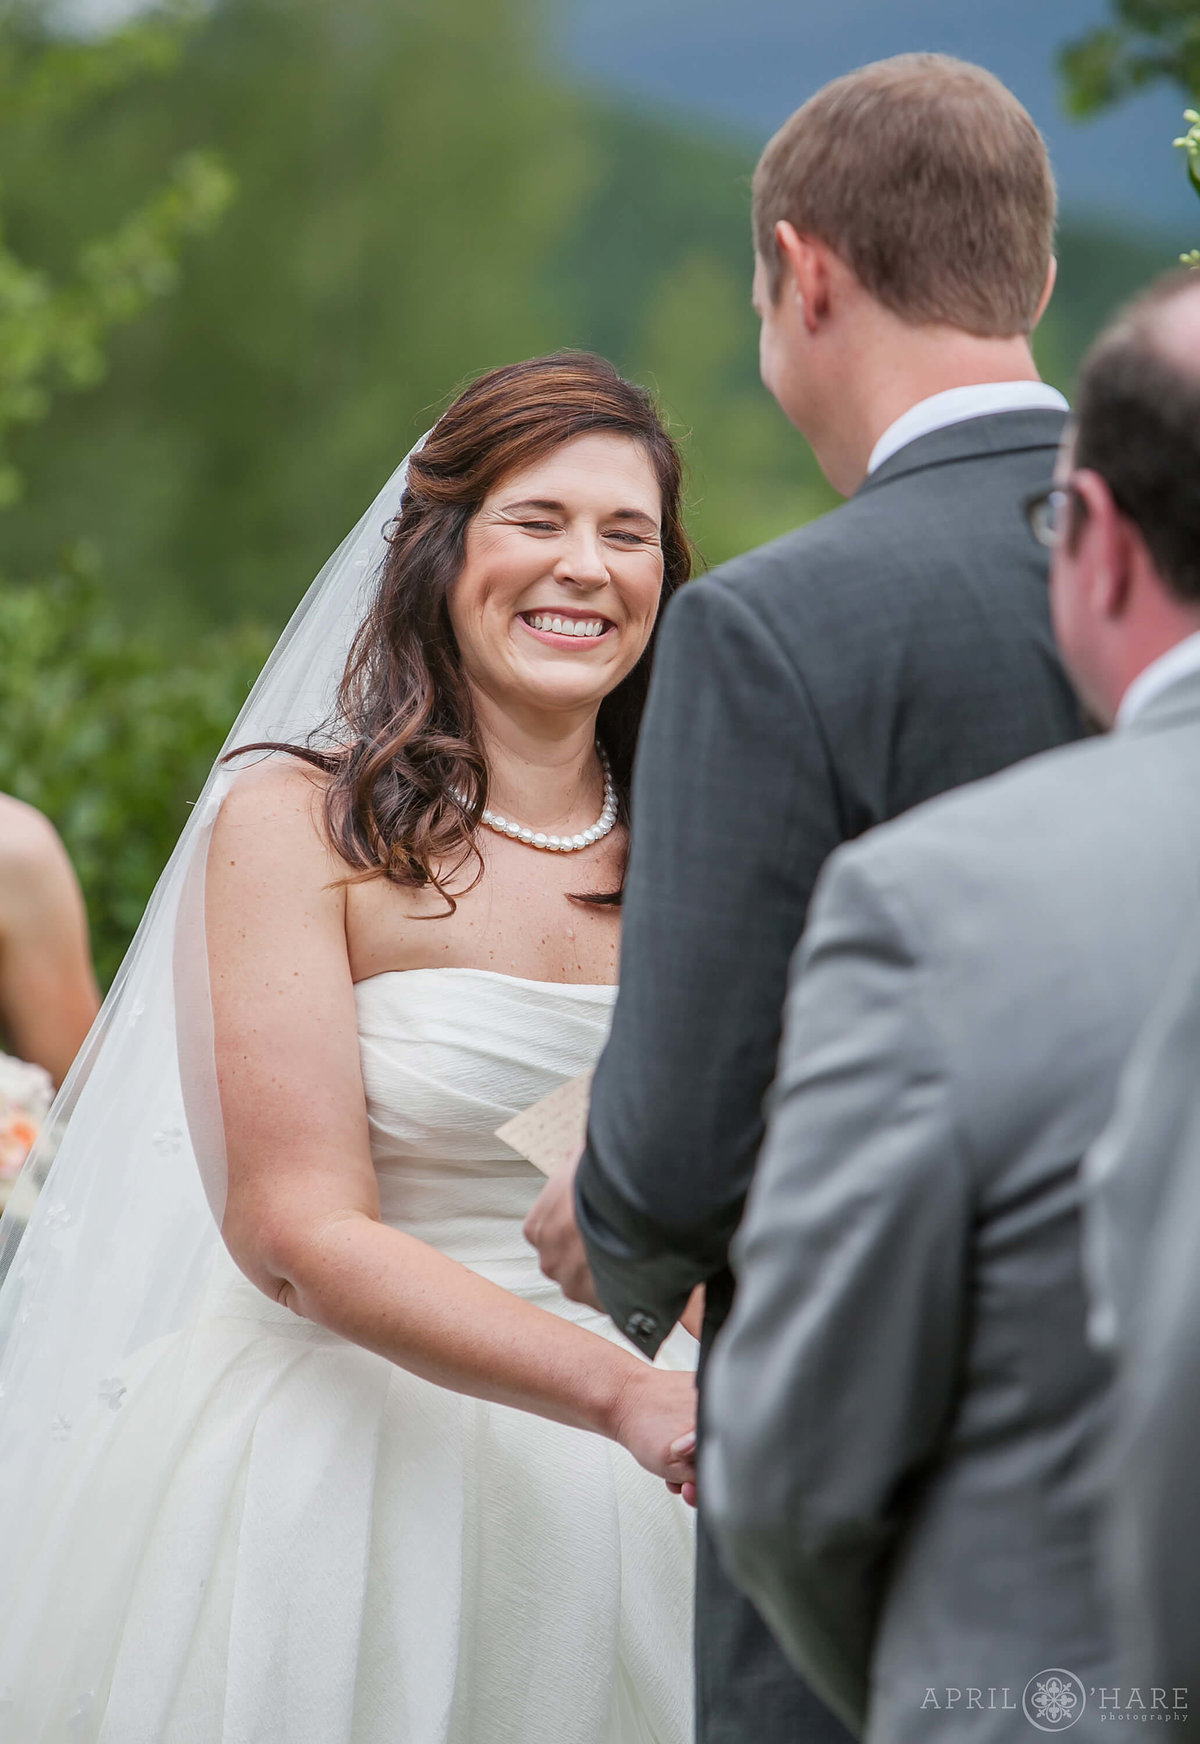 Sweet wedding photo of bride laughing at her outdoor Colorado wedding at Mountain wedding garden Crested Butte